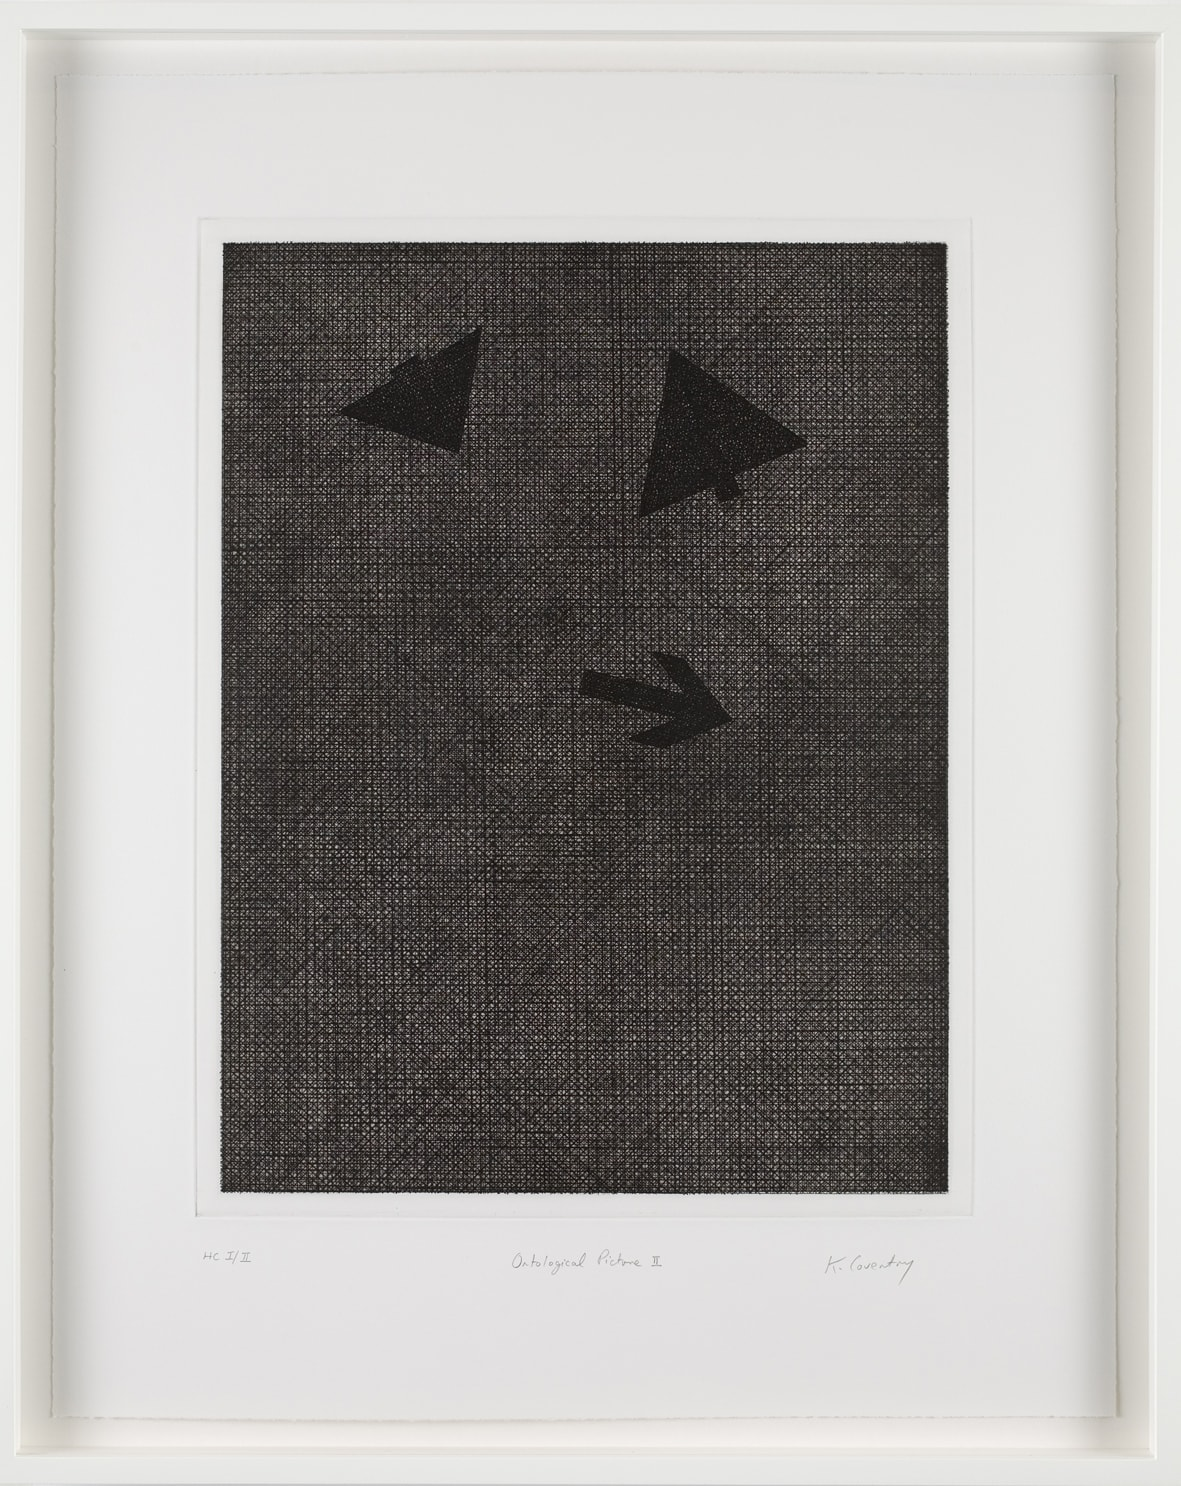 Keith Coventry Ontological Picture II, 2008 Etching on Somerset 300gsm Signed, Titled and Numbered 61 x 48.5 cm Edition of 50